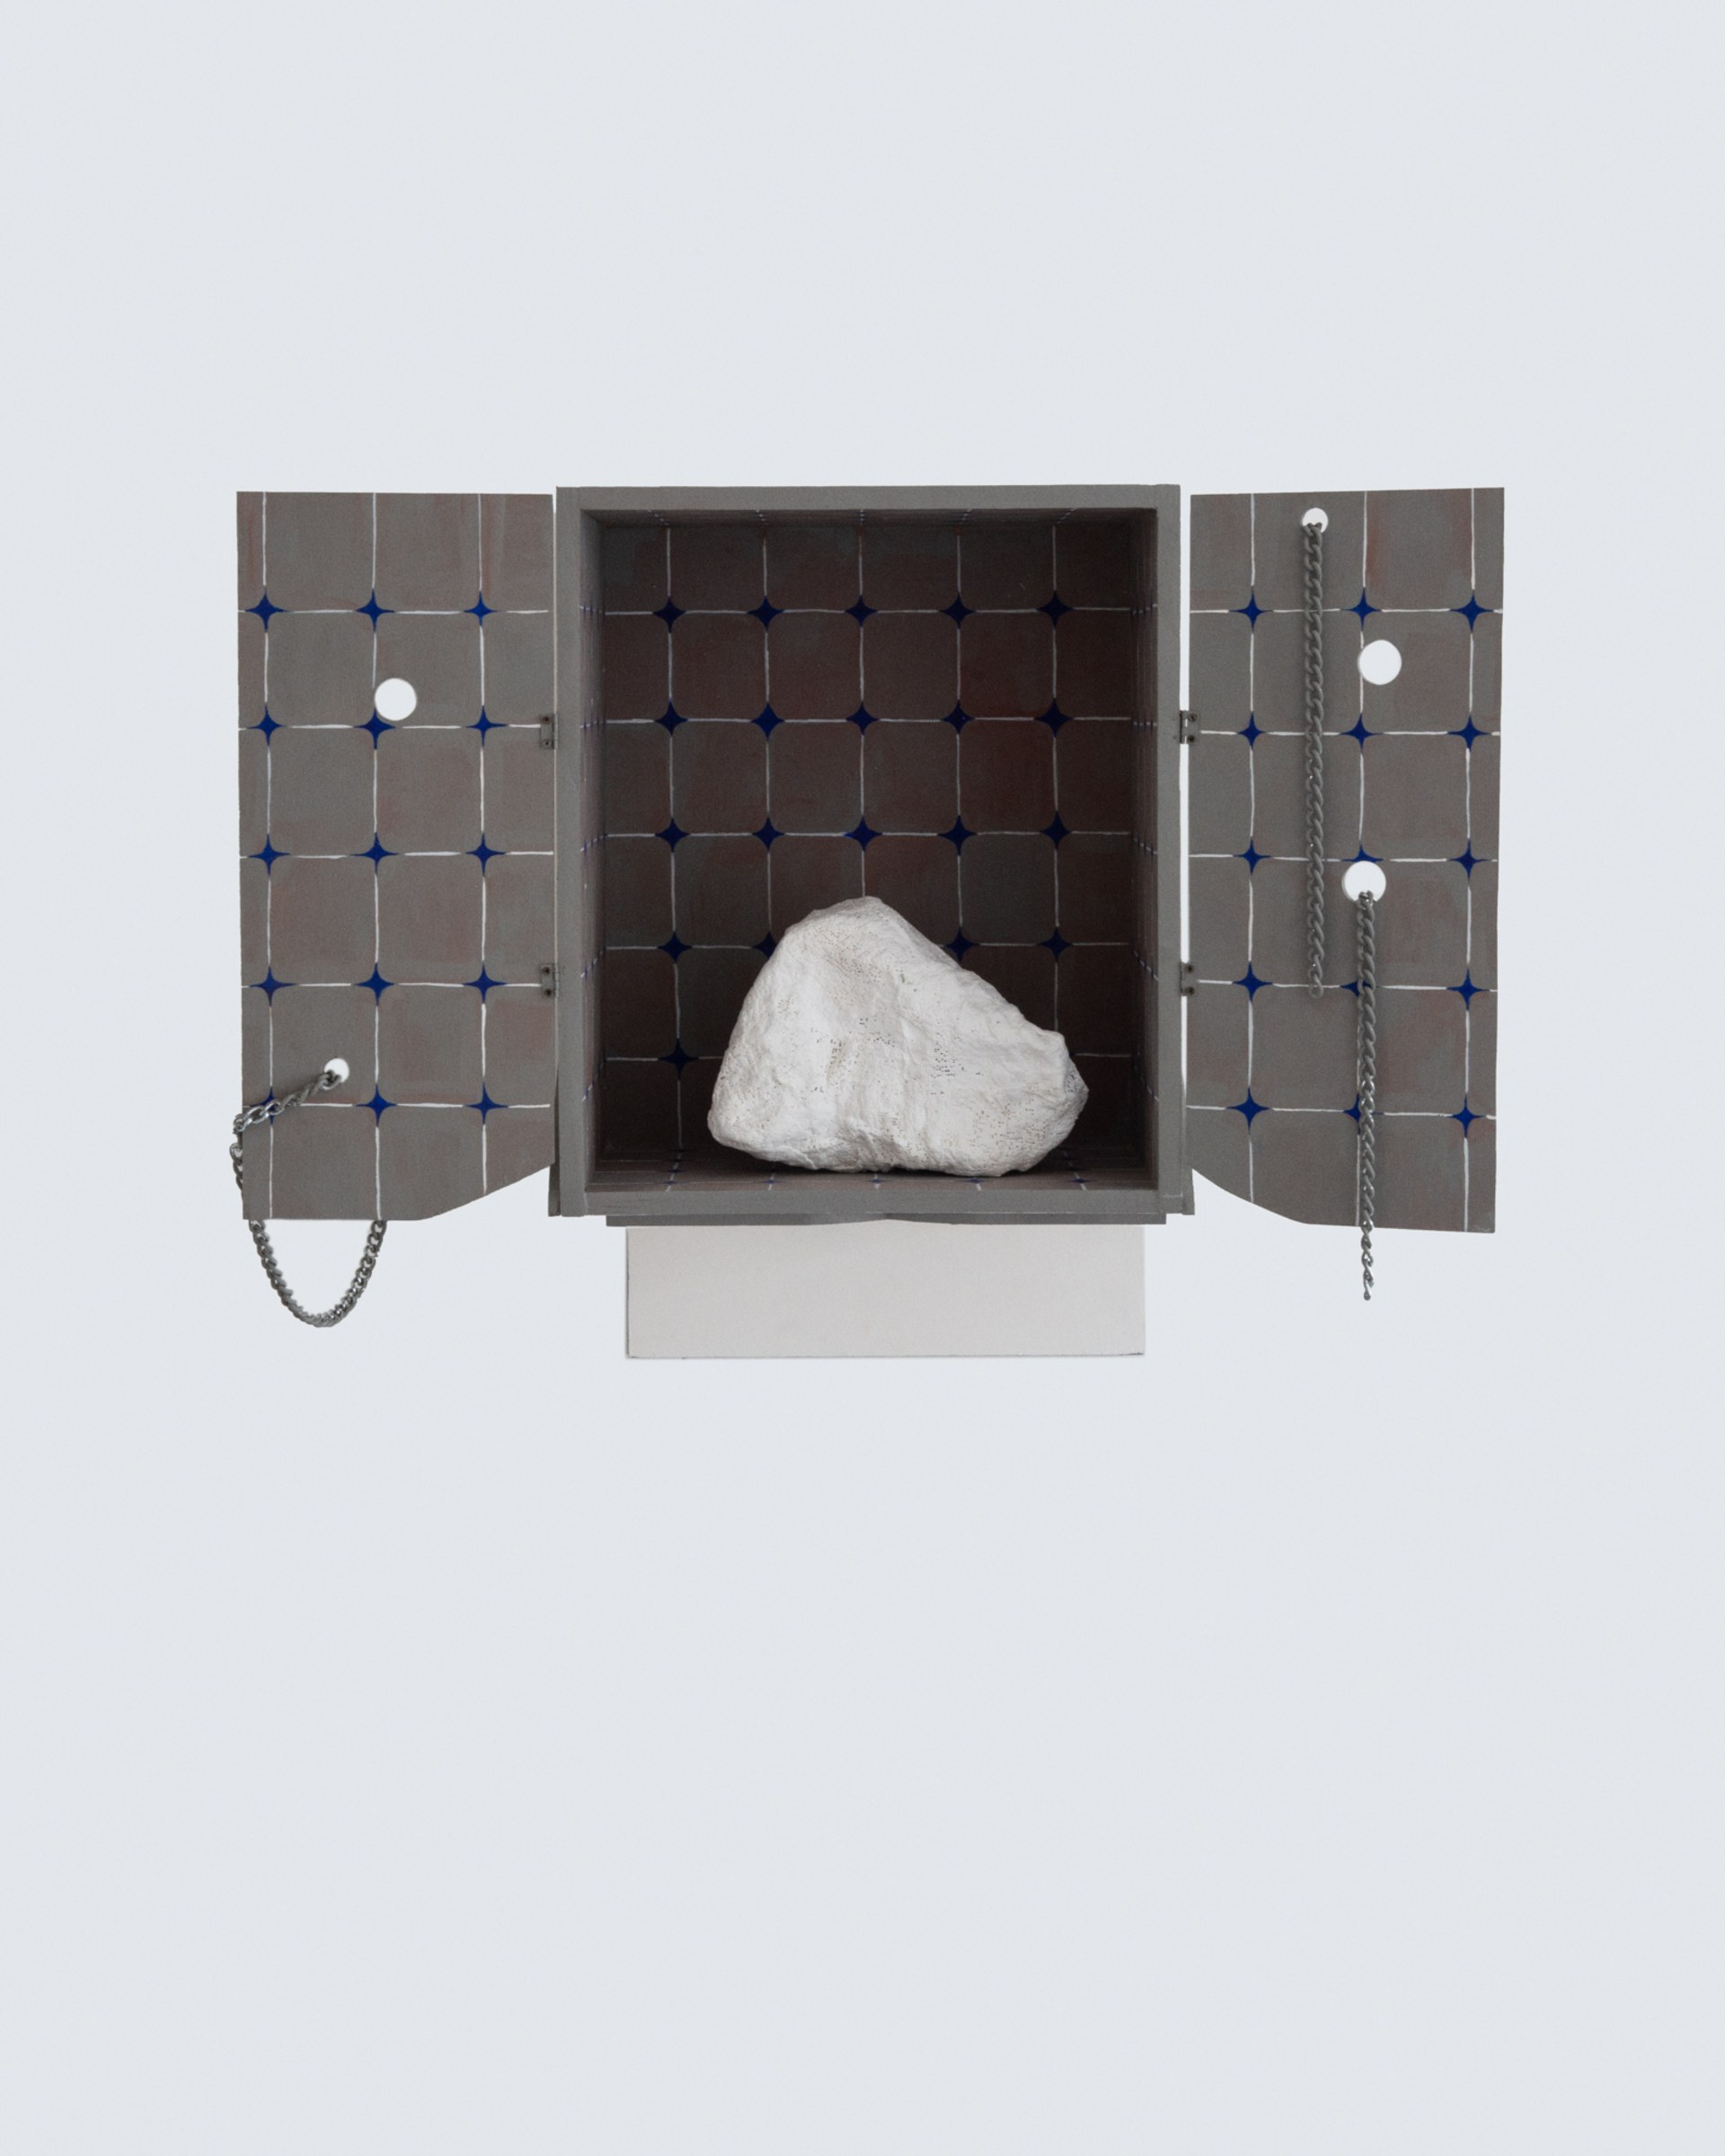 Moon Stone, 2020, Chain, chicken wire, hook, paint, plaster, plywood